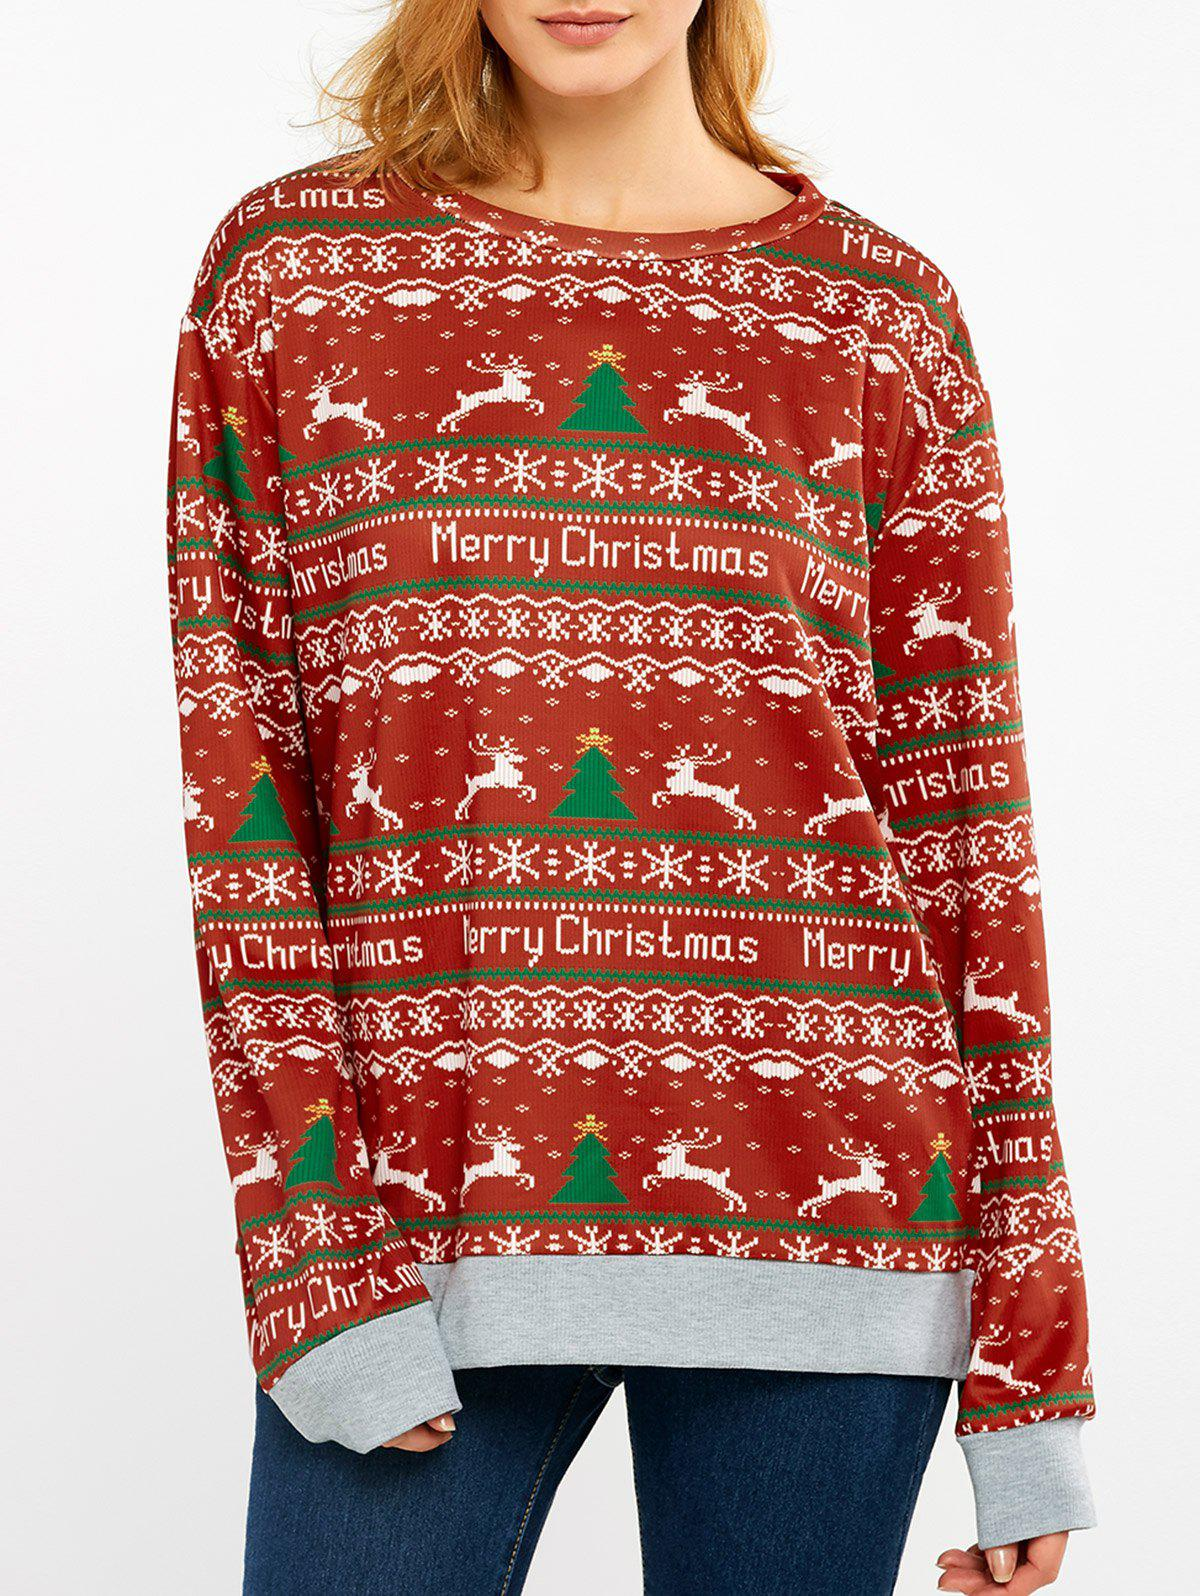 Merry Christmas Print SweatshirtWOMEN<br><br>Size: L; Color: RED; Material: Polyester; Shirt Length: Long; Sleeve Length: Full; Style: Fashion; Pattern Style: Print; Season: Fall,Spring; Weight: 0.249kg; Package Contents: 1 x Sweatshirt;